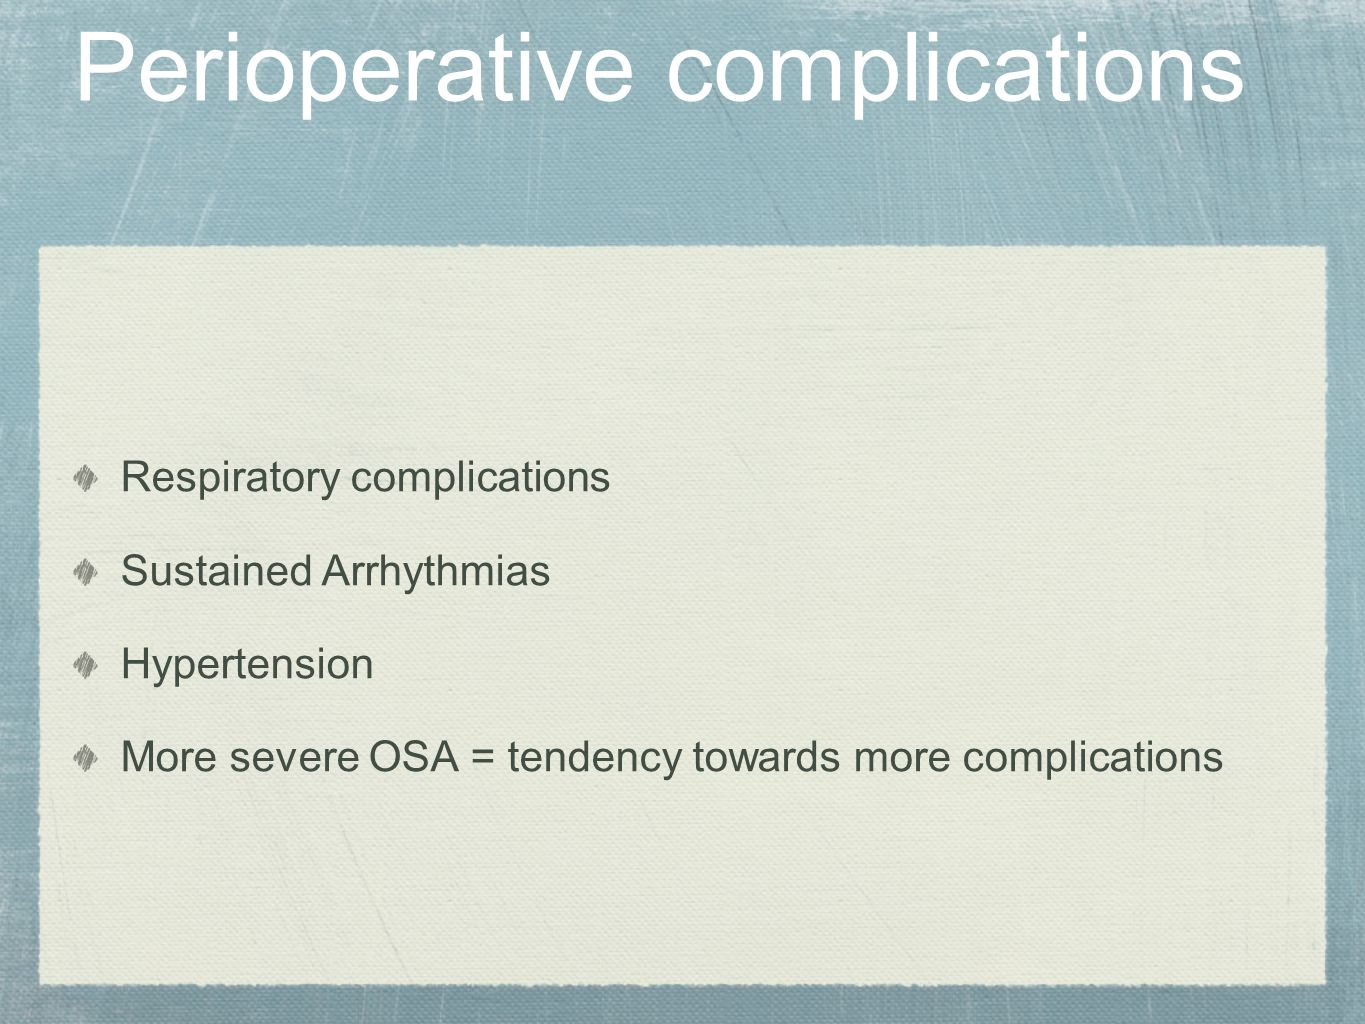 Perioperative complications